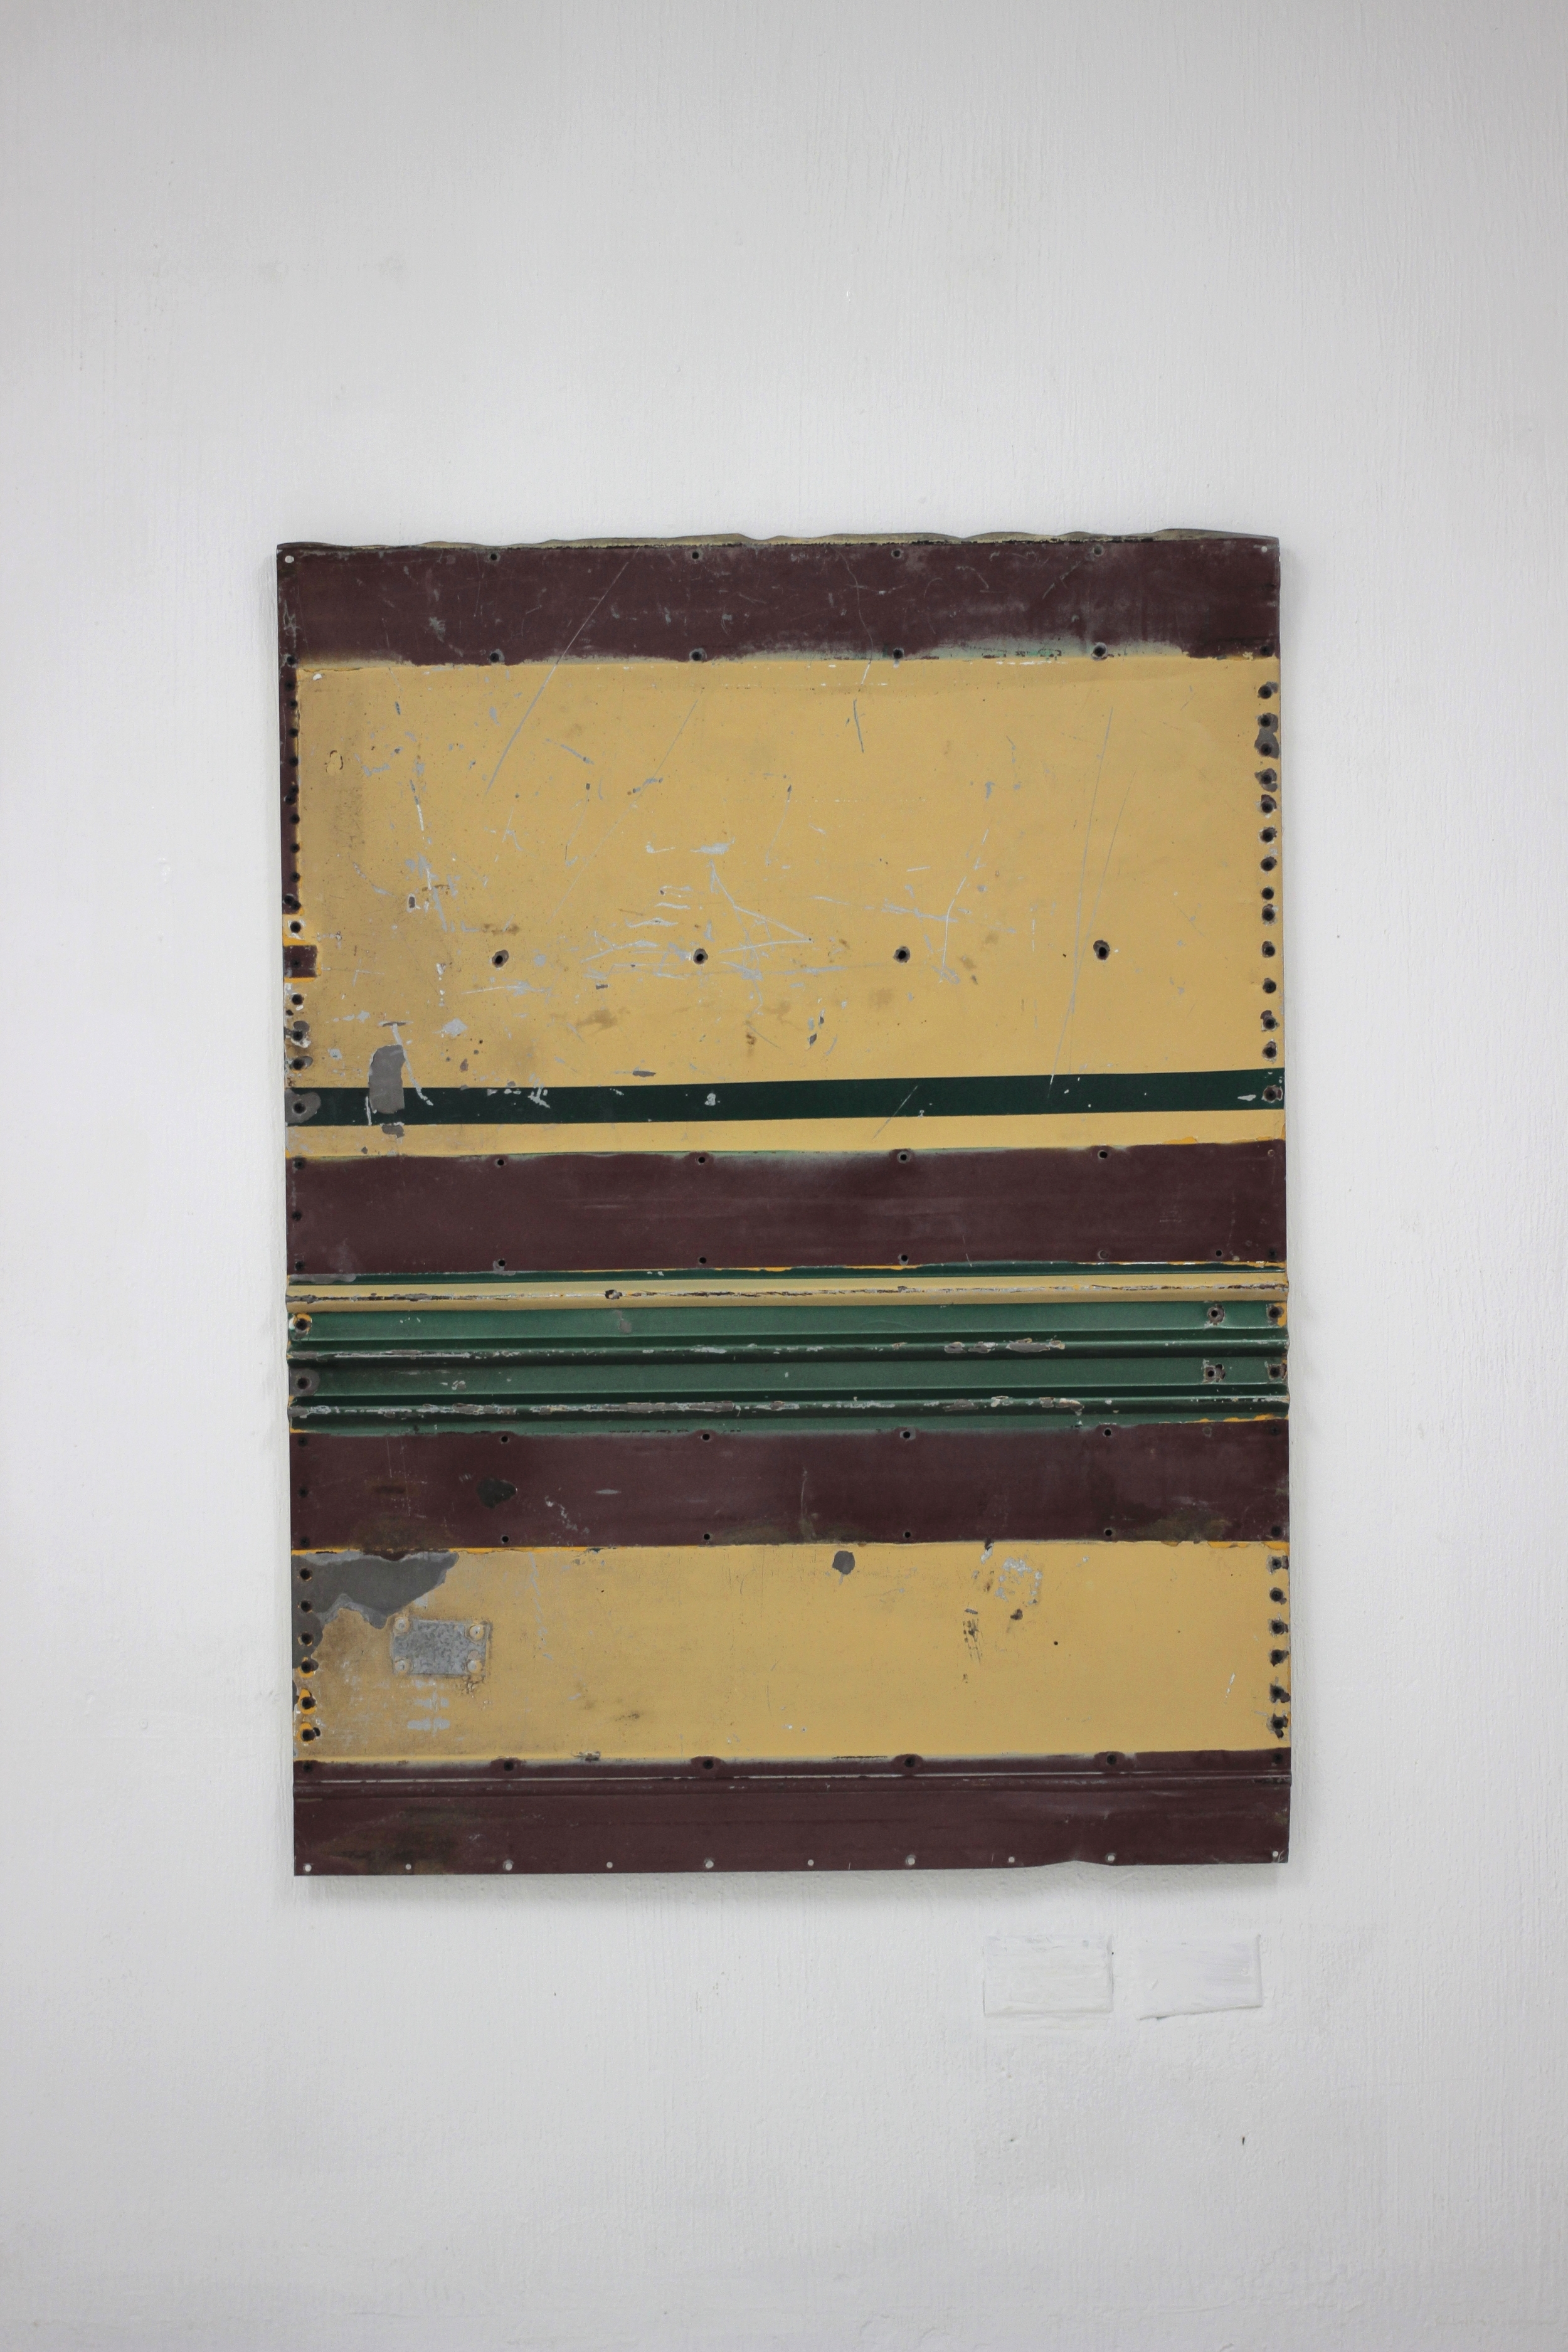 Geometric Relief No. 6   2014  Found urban bus panel assembled on wood and converved with acryloid.  118 x 88.5 x 3 cm  Photo credit: Diego Sagastume